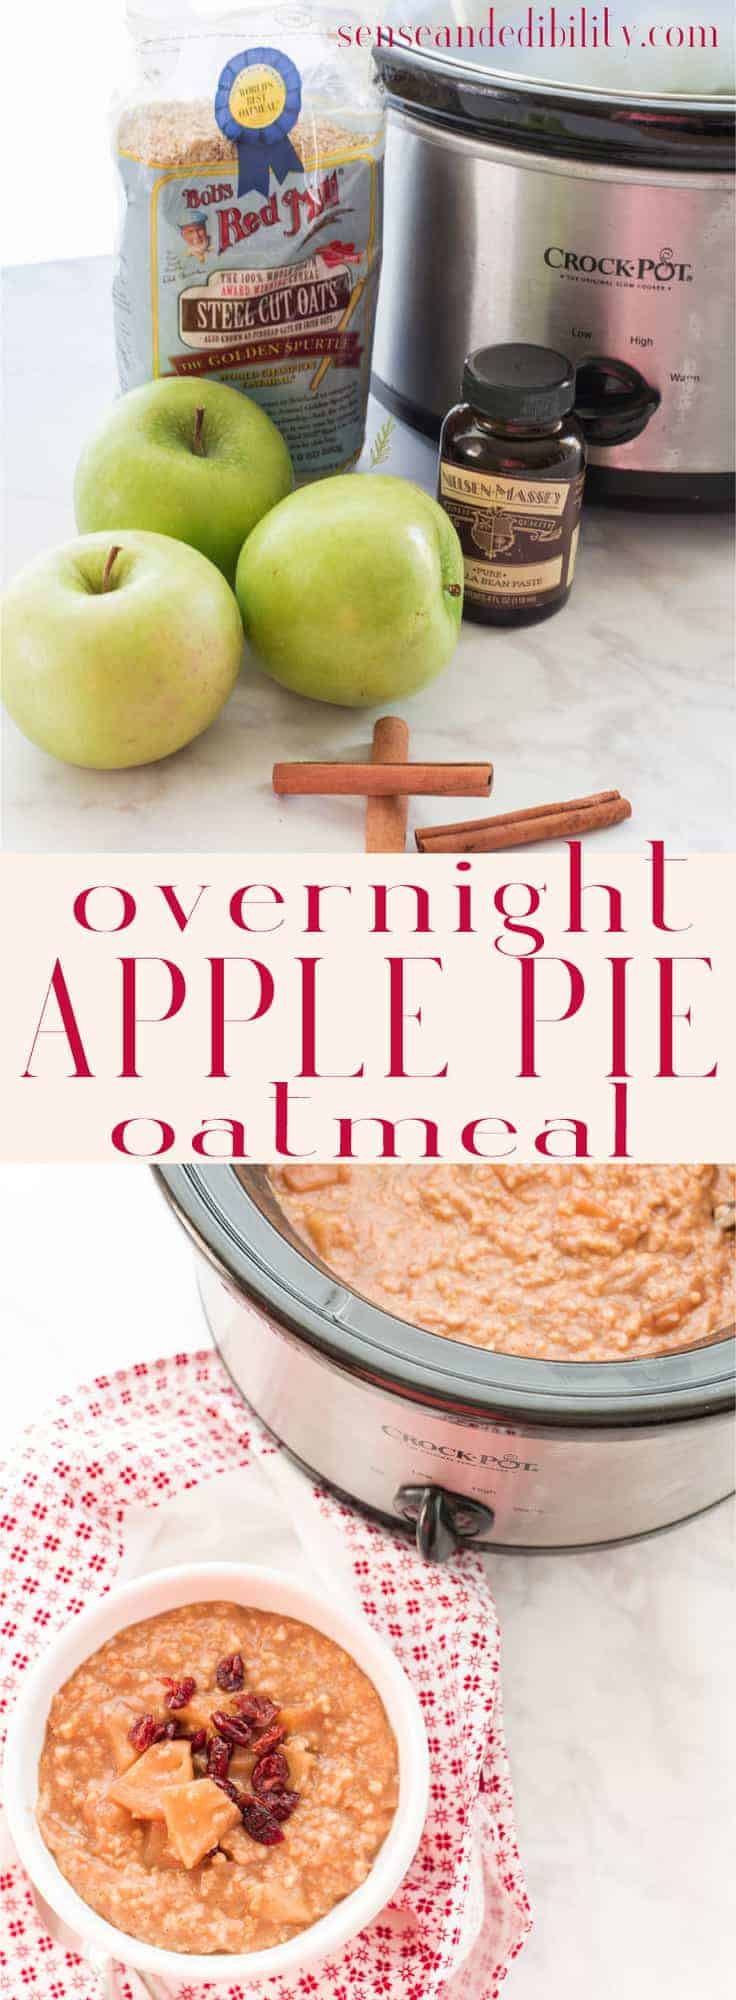 Sense & Edibility's Overnight Apple Pie Oatmeal Pin